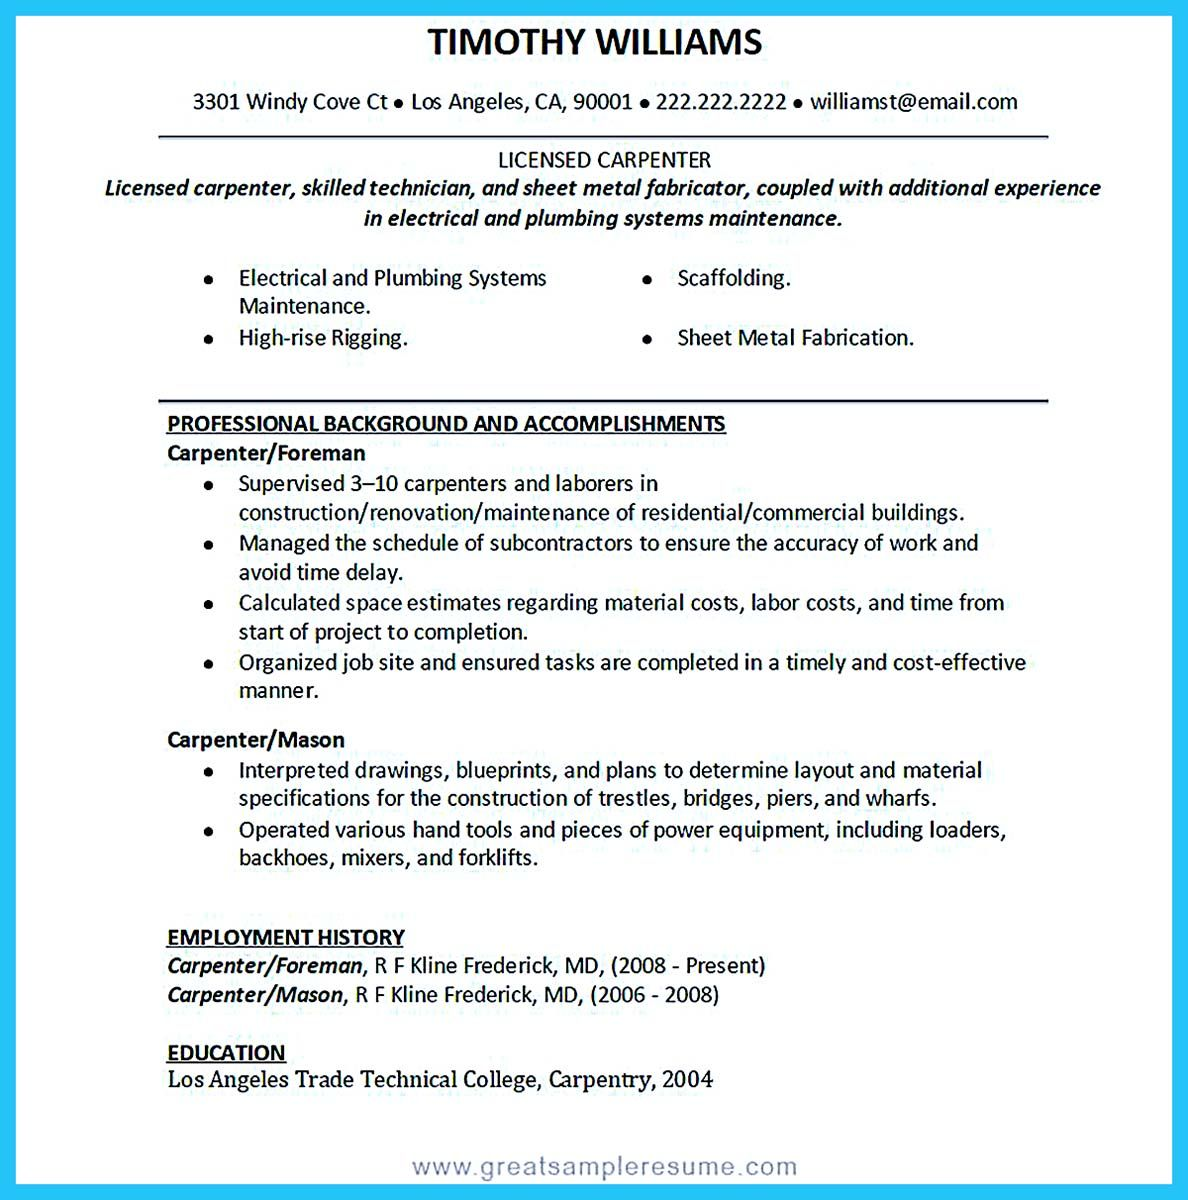 Laborer Resume Carpenter Resume Samples Australia Template Construction Sample